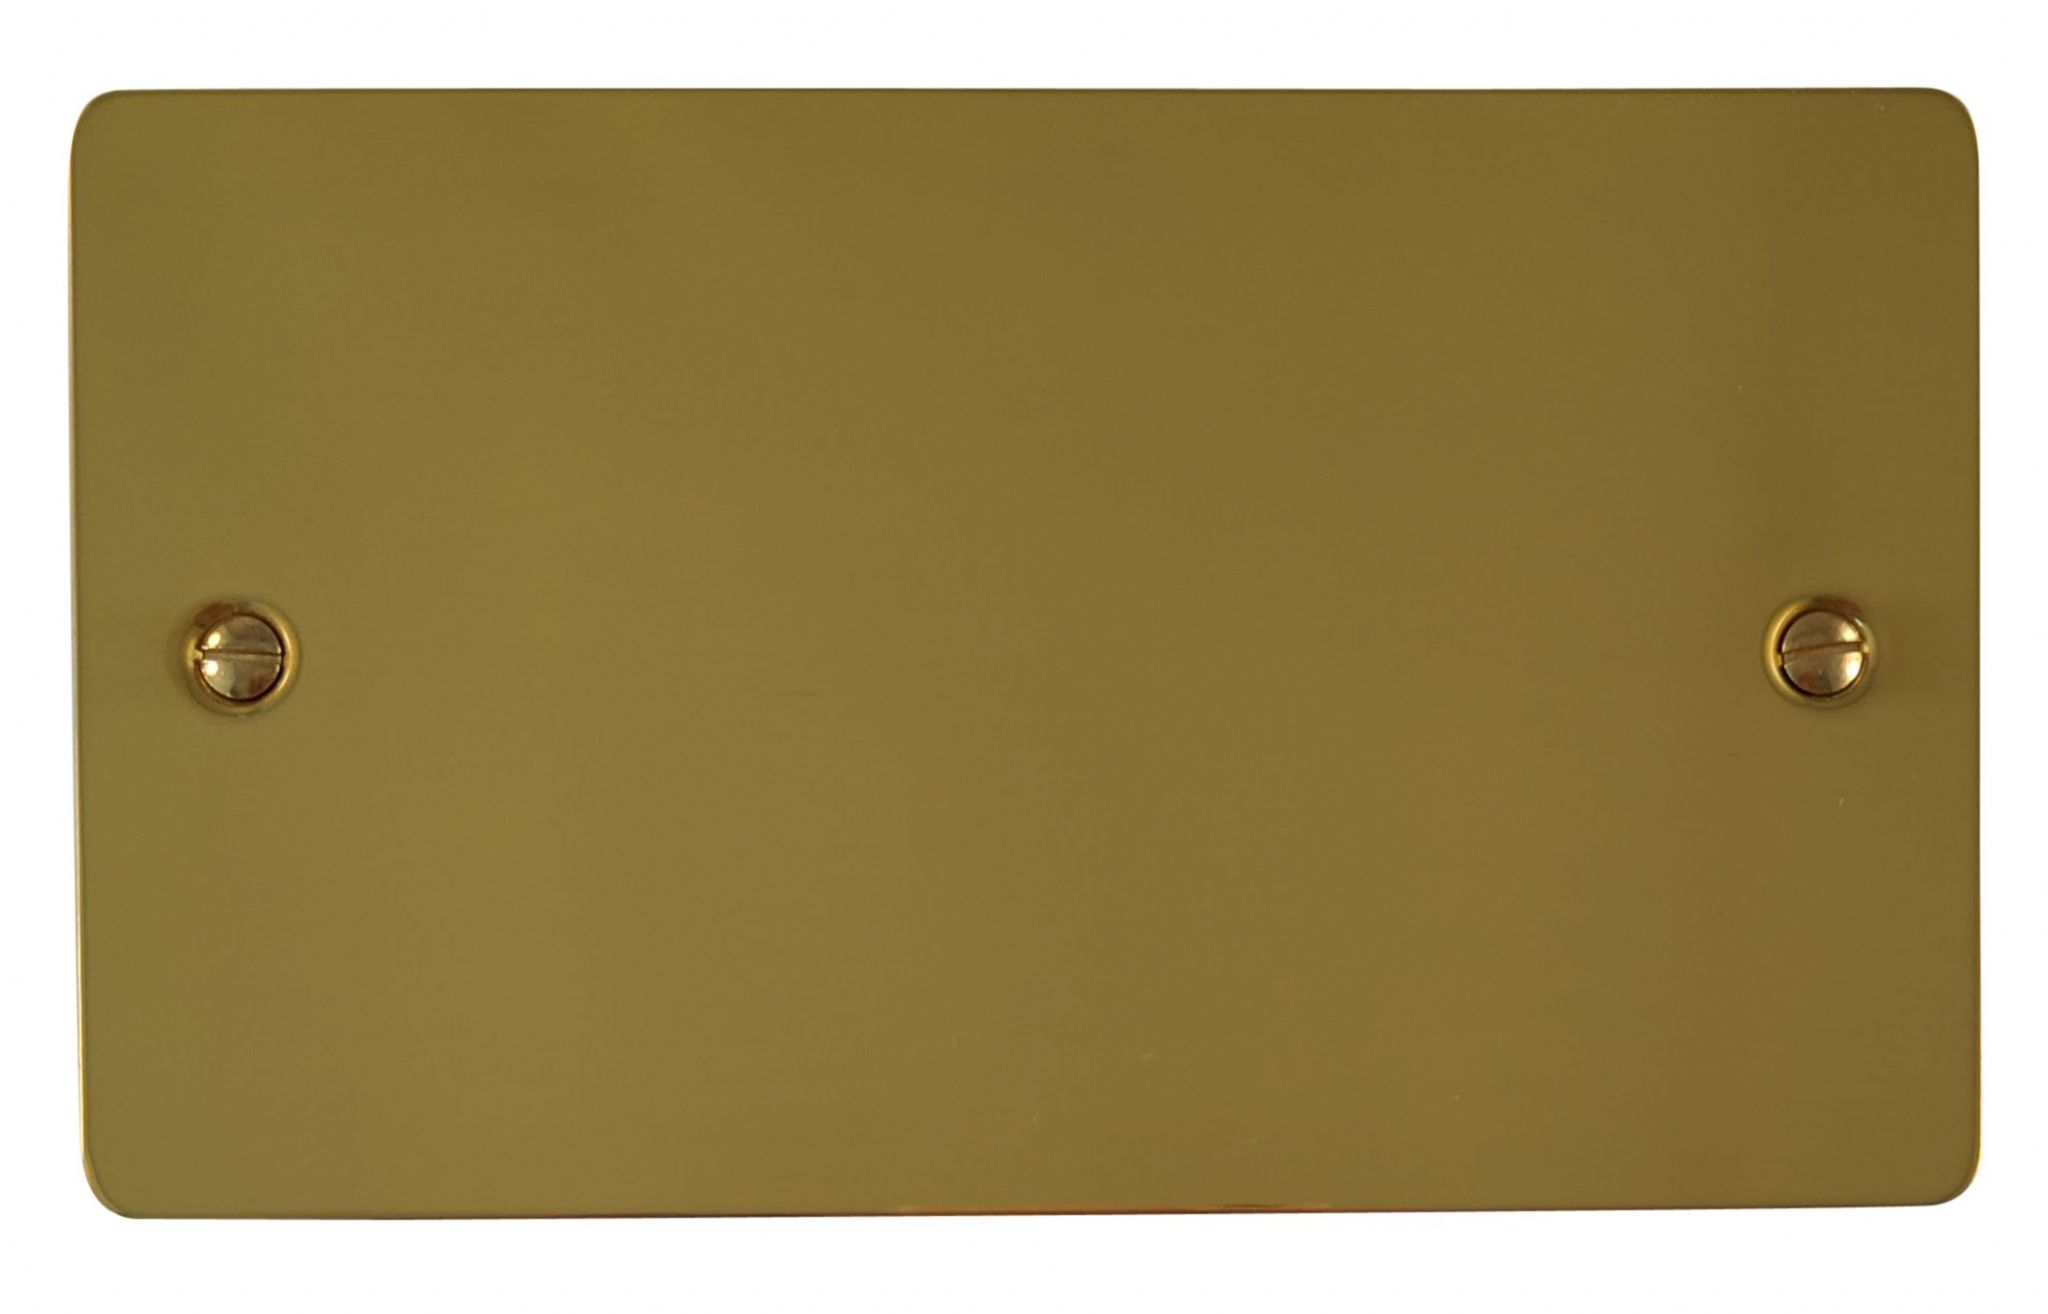 G&H FB32 Flat Plate Polished Brass 2 Gang Double Blank Plate